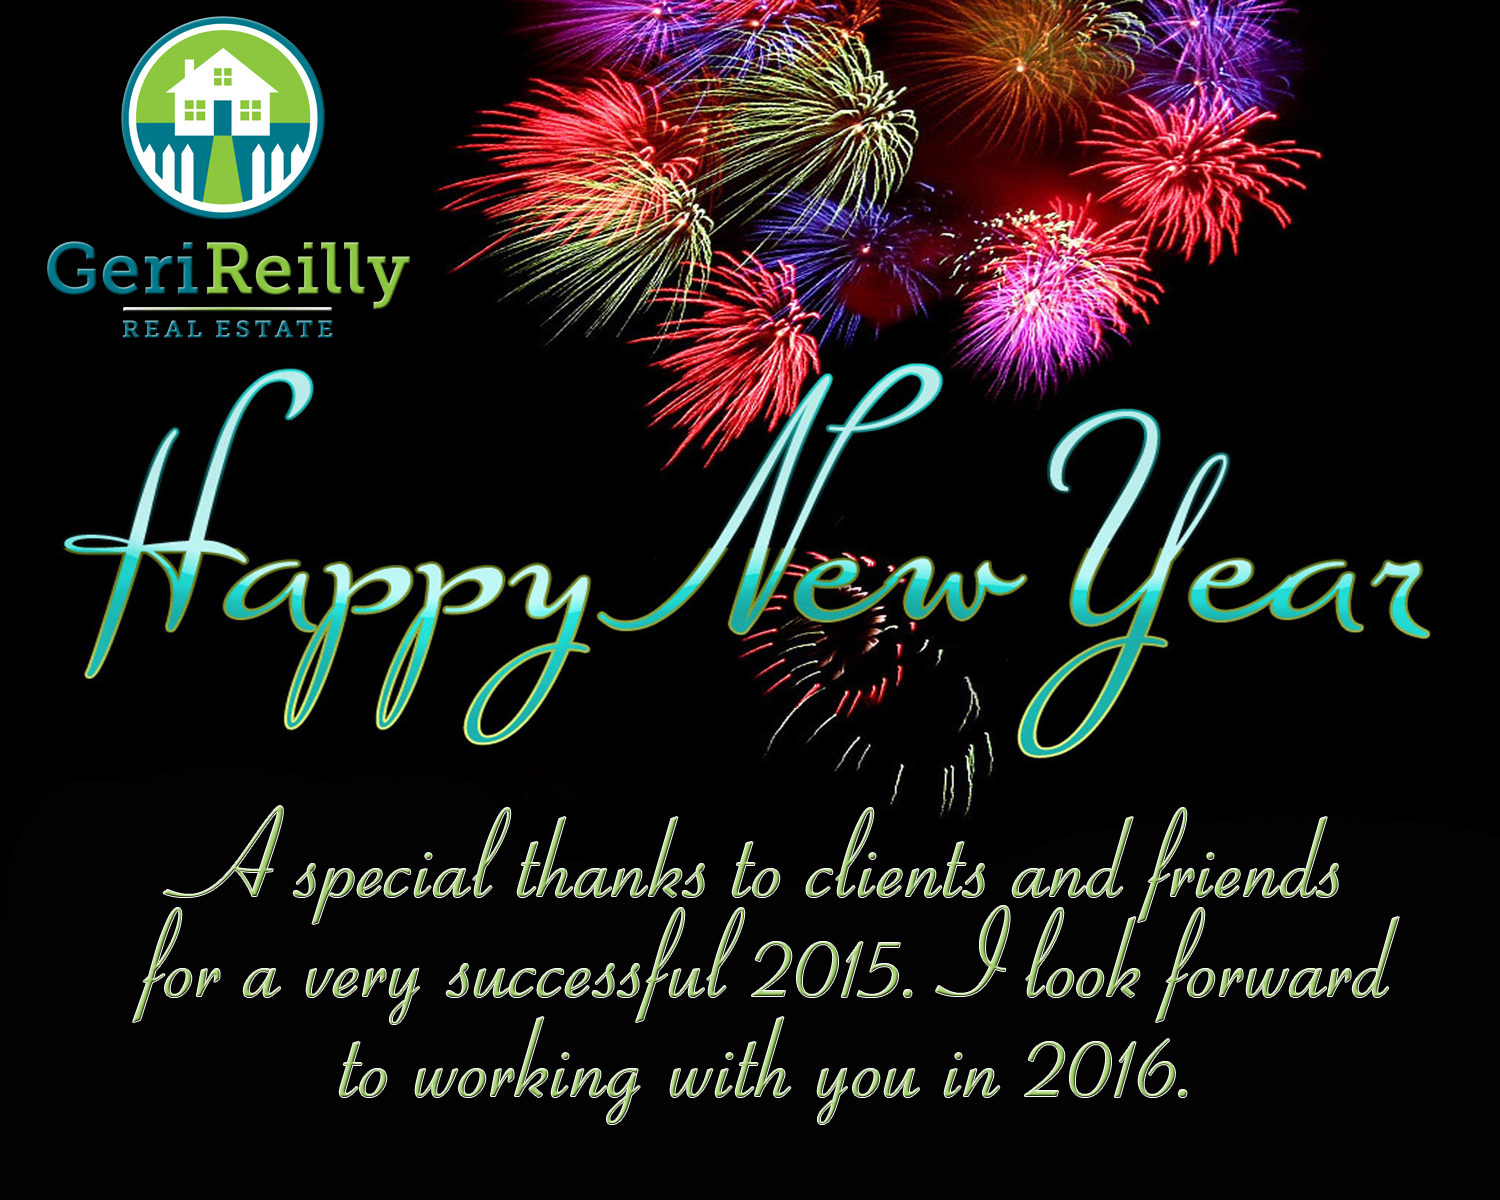 happy new year from geri reilly real estate